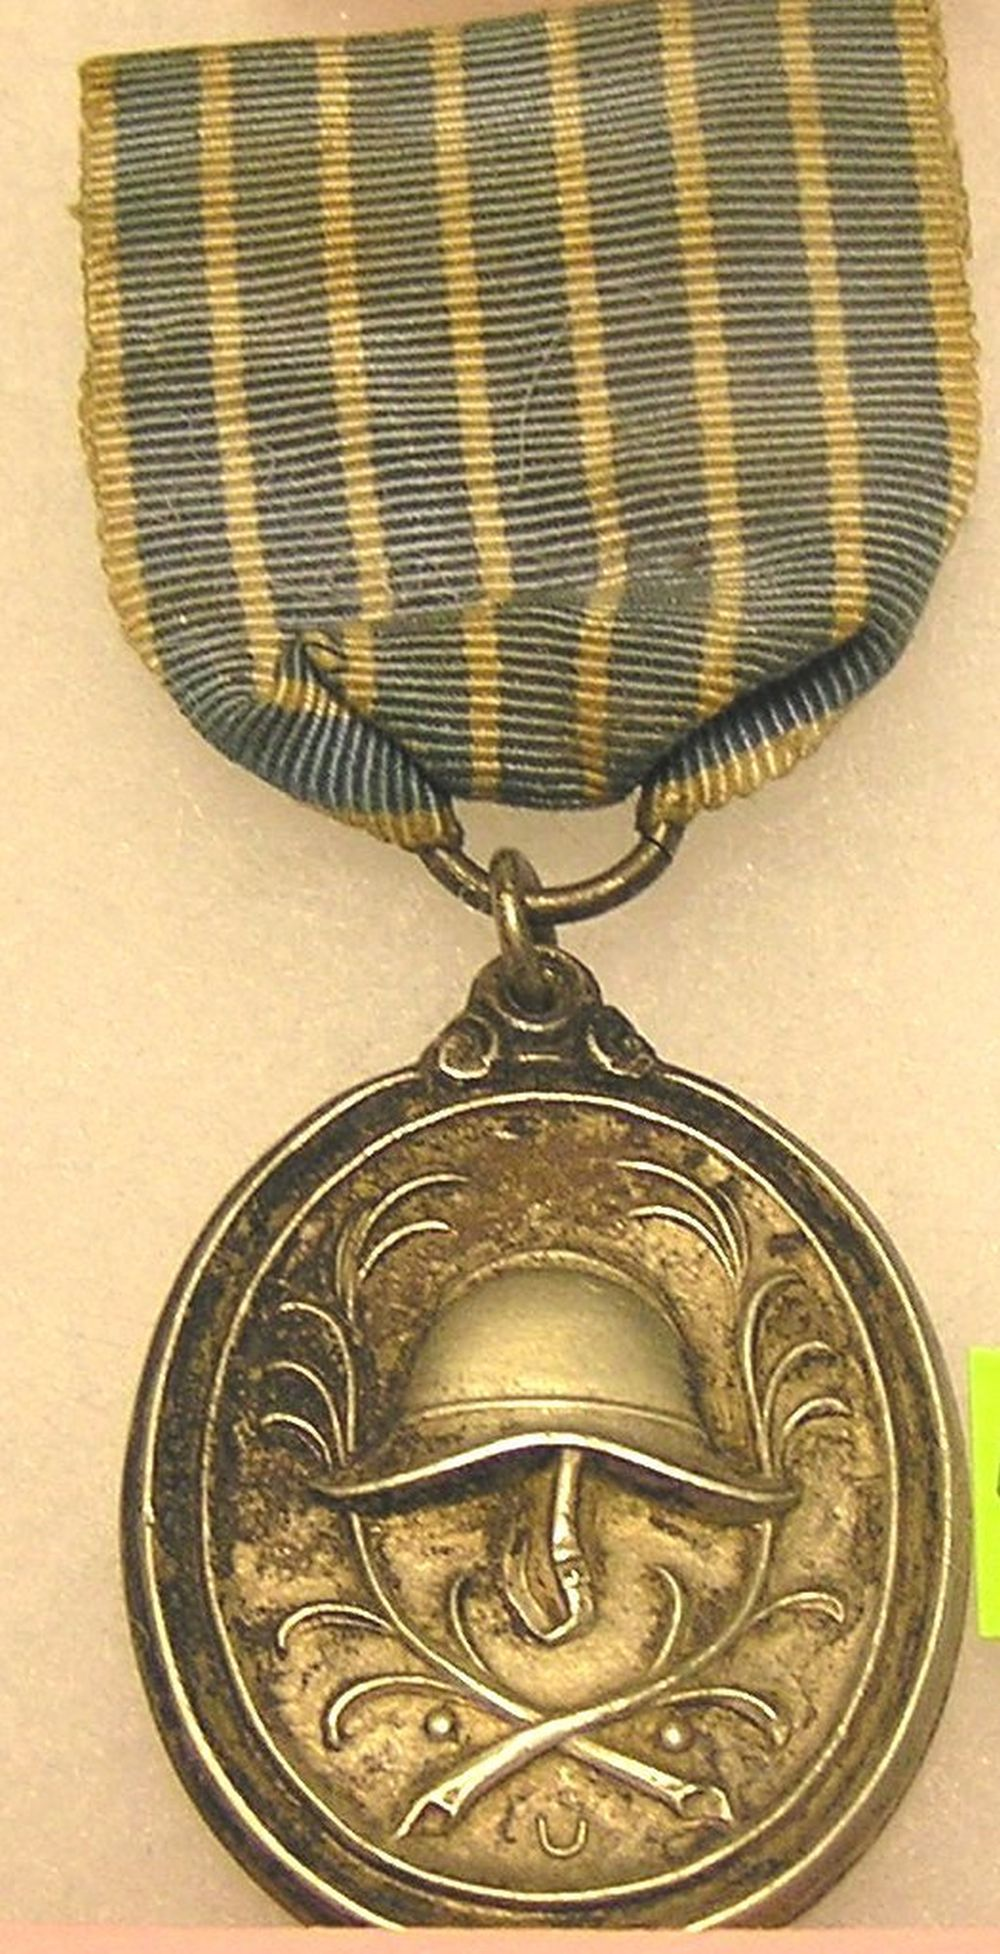 WWI GERMAN ARMY 25 YEAR SERVICE MEDAL